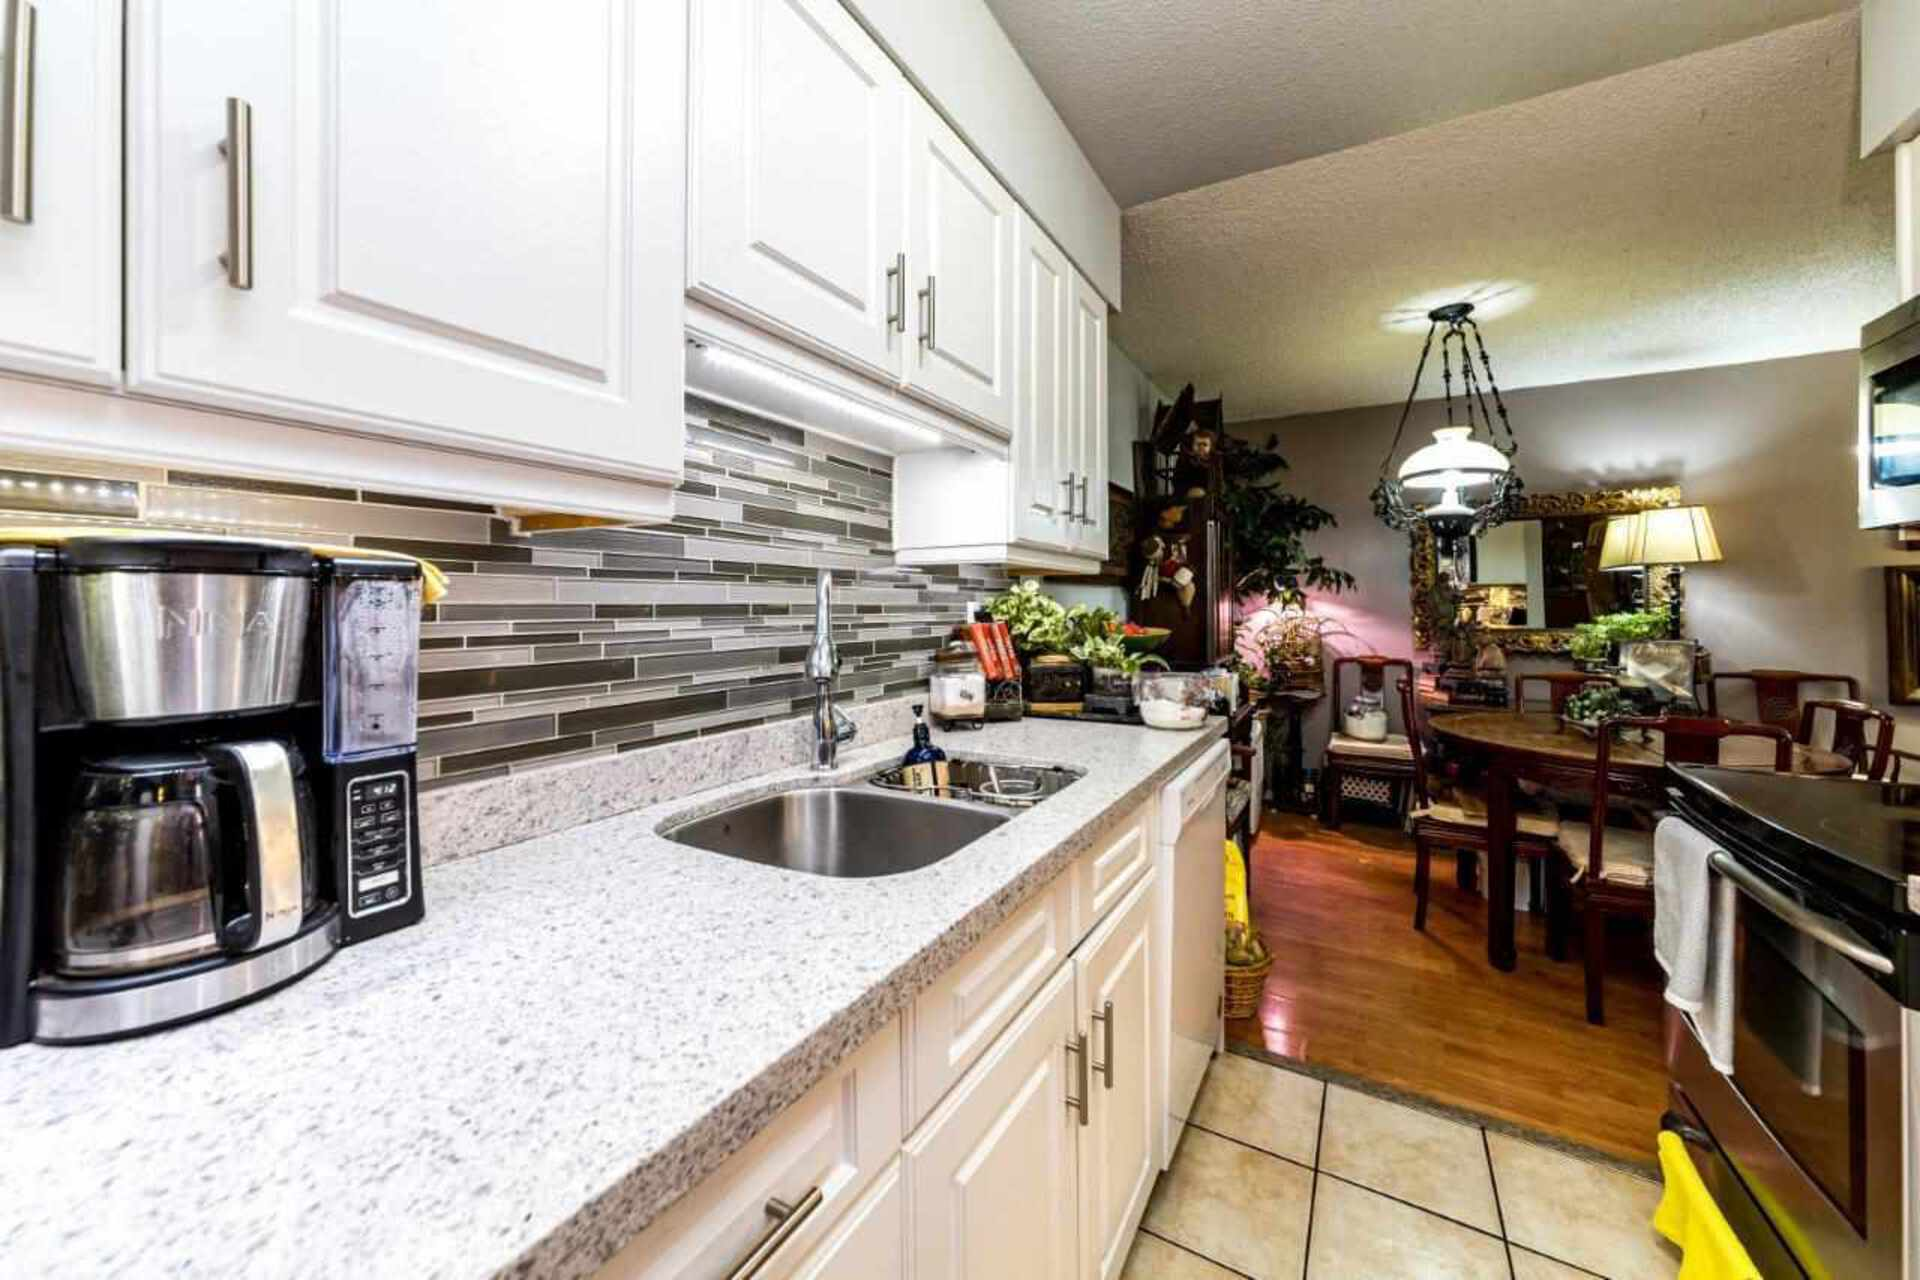 5932-patterson-avenue-metrotown-burnaby-south-10 at 501 - 5932 Patterson Avenue, Metrotown, Burnaby South